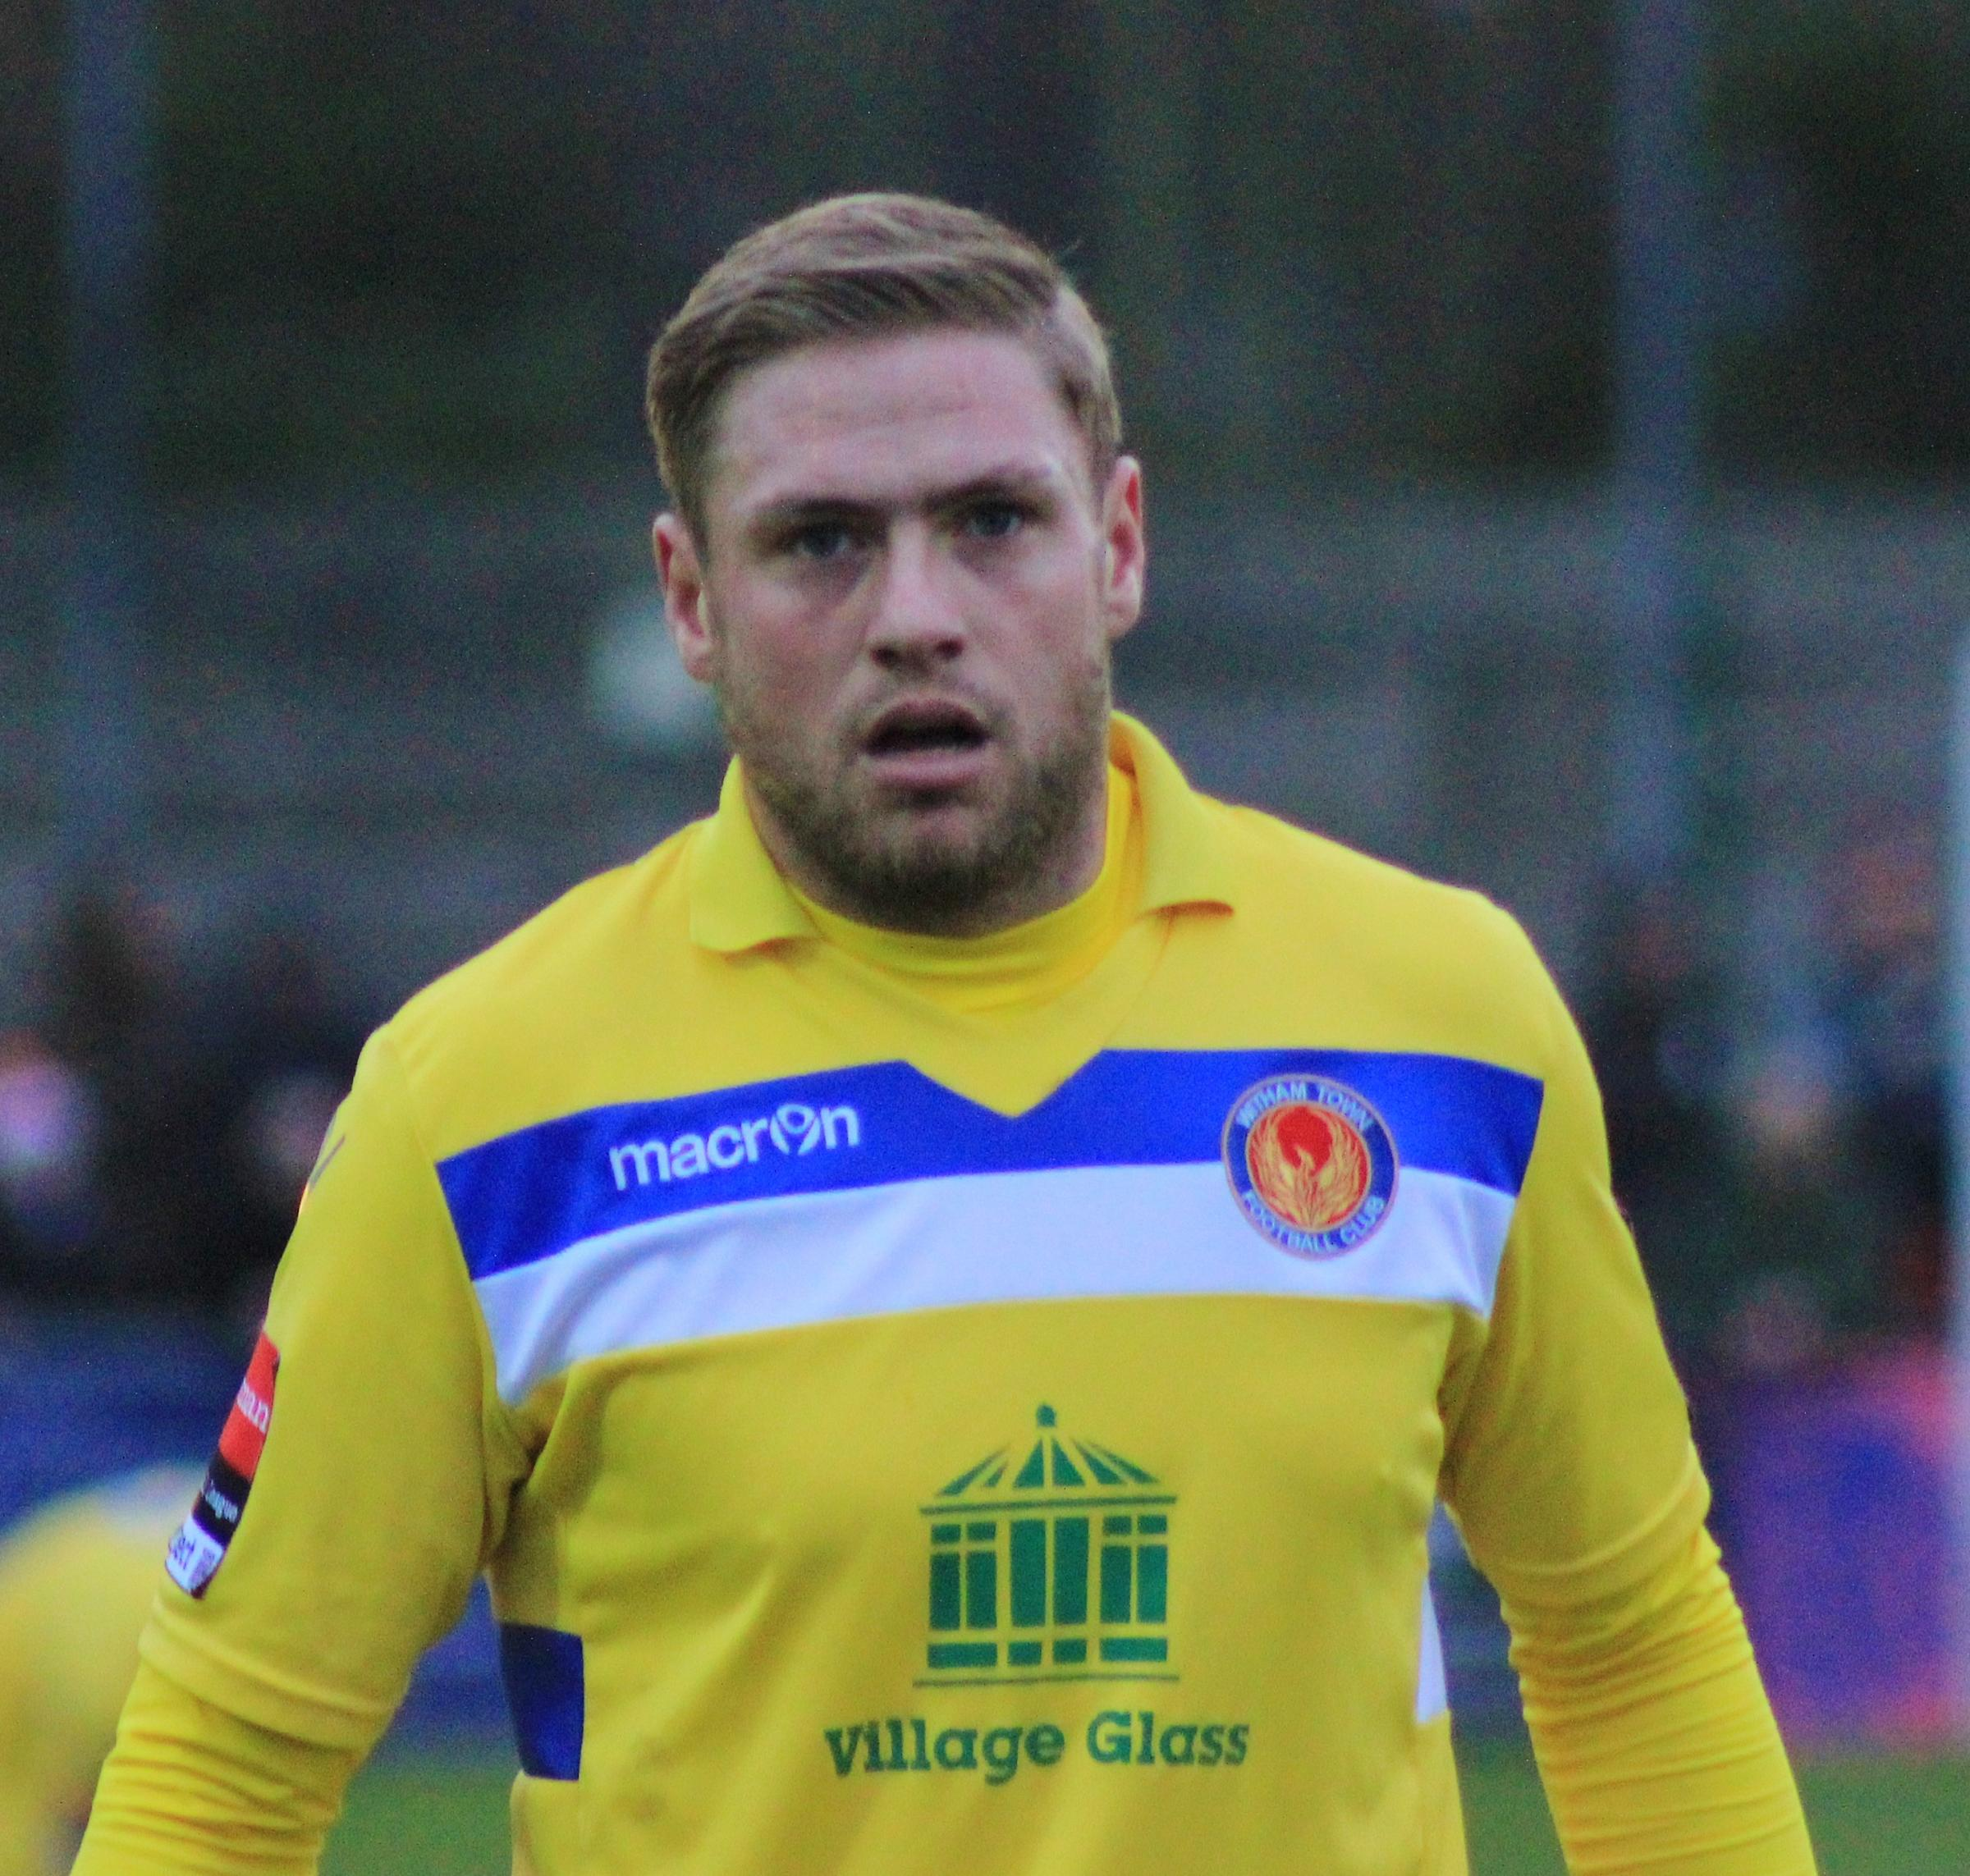 Jamie Guy - has signed for Billericay Town